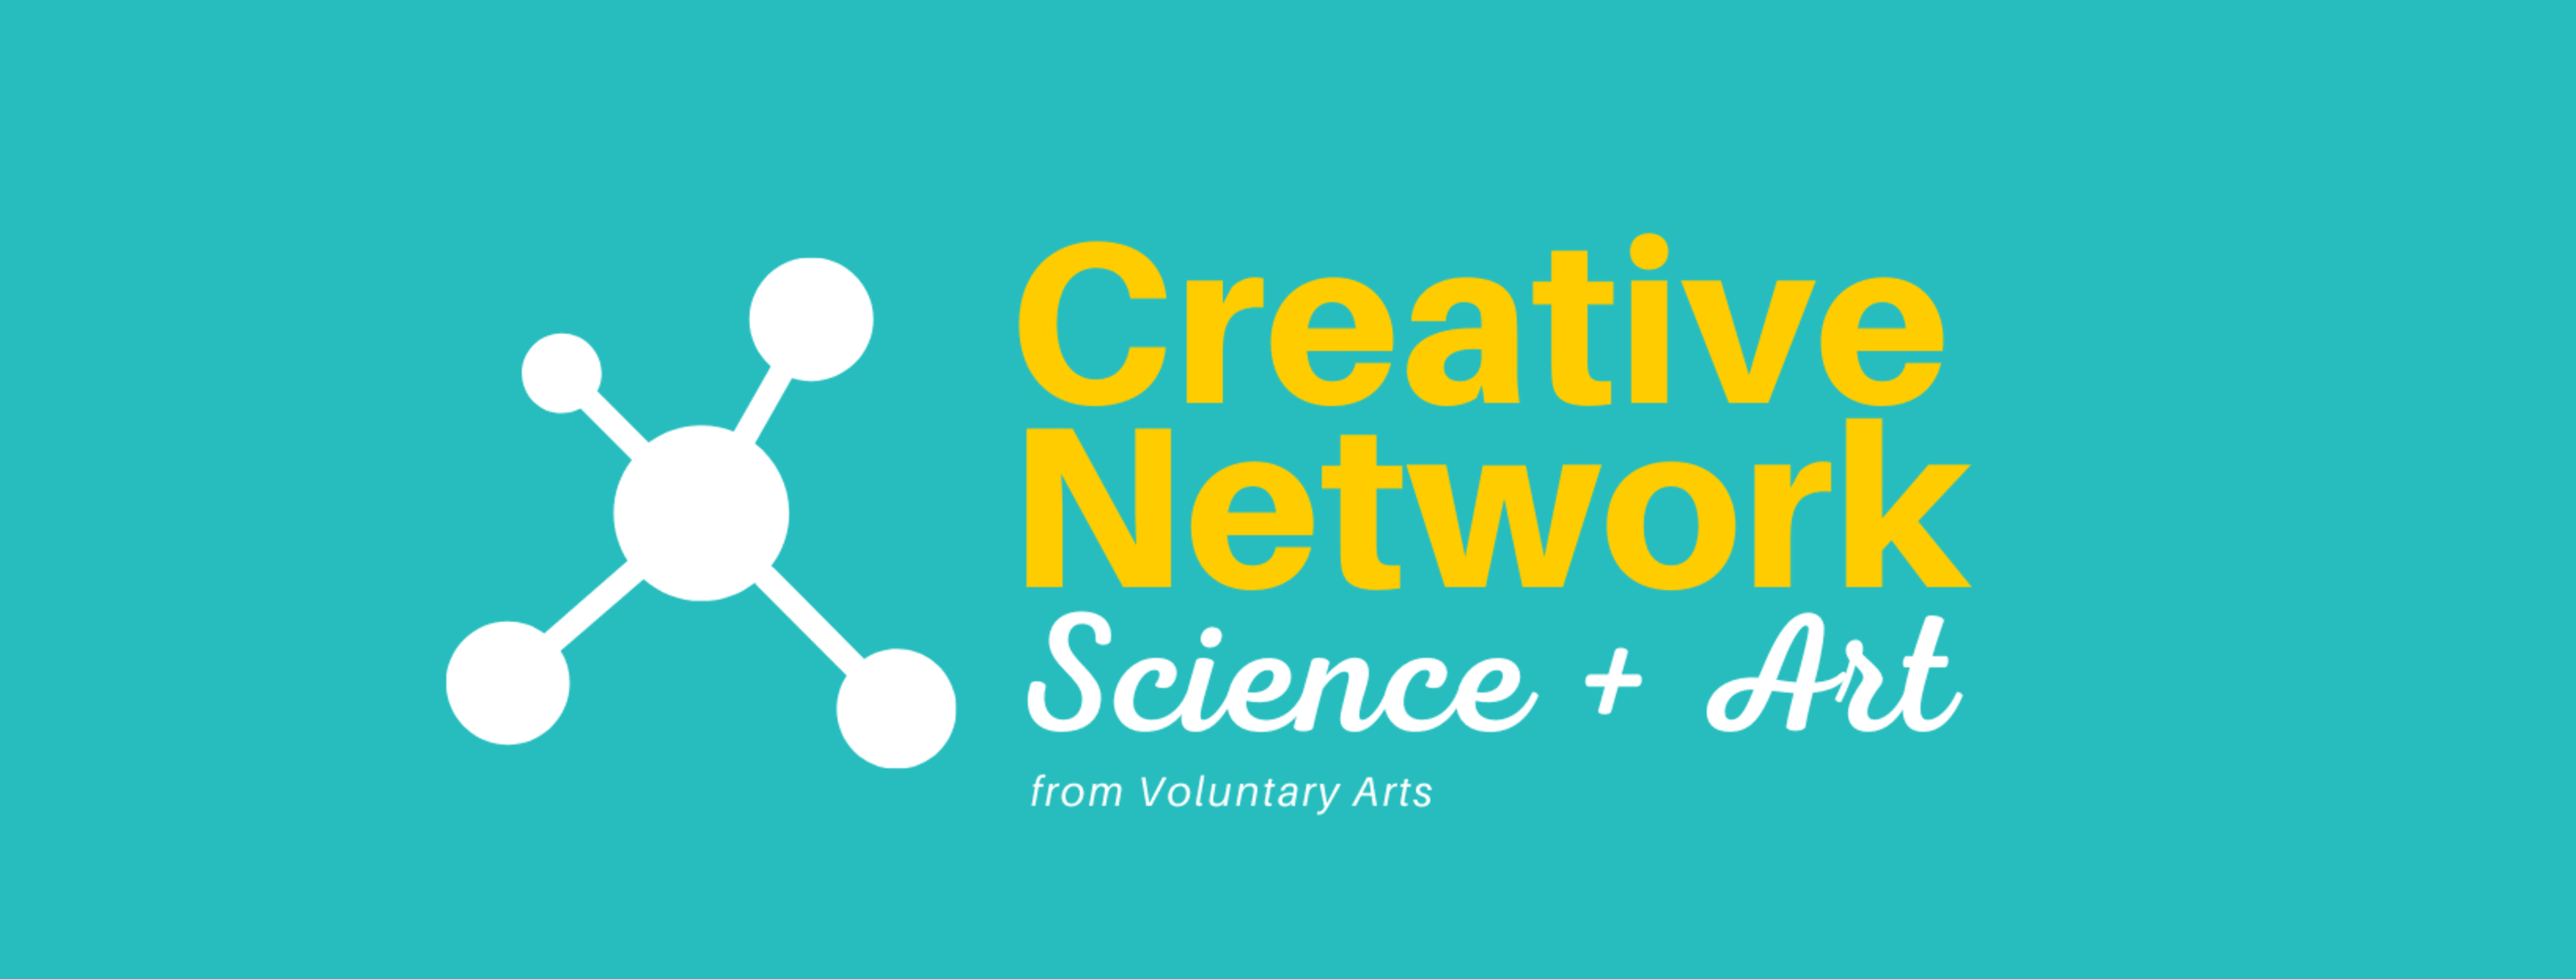 #CreativeNetwork - Science + Art